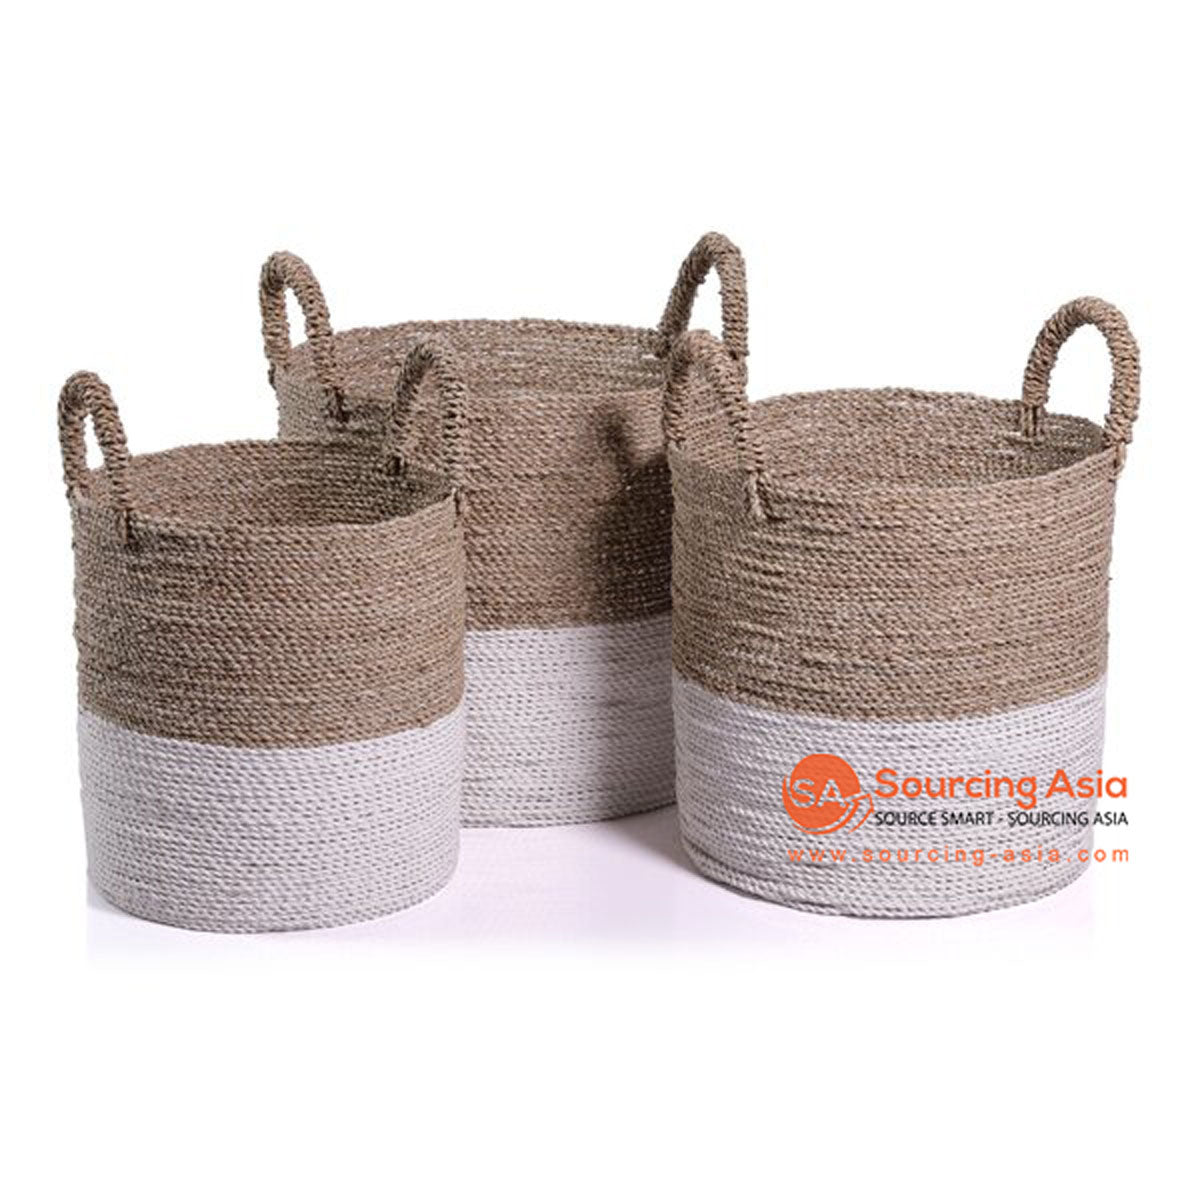 SHL057-8 SET OF THREE SEAGRASS BASKETS WITH HANDLE